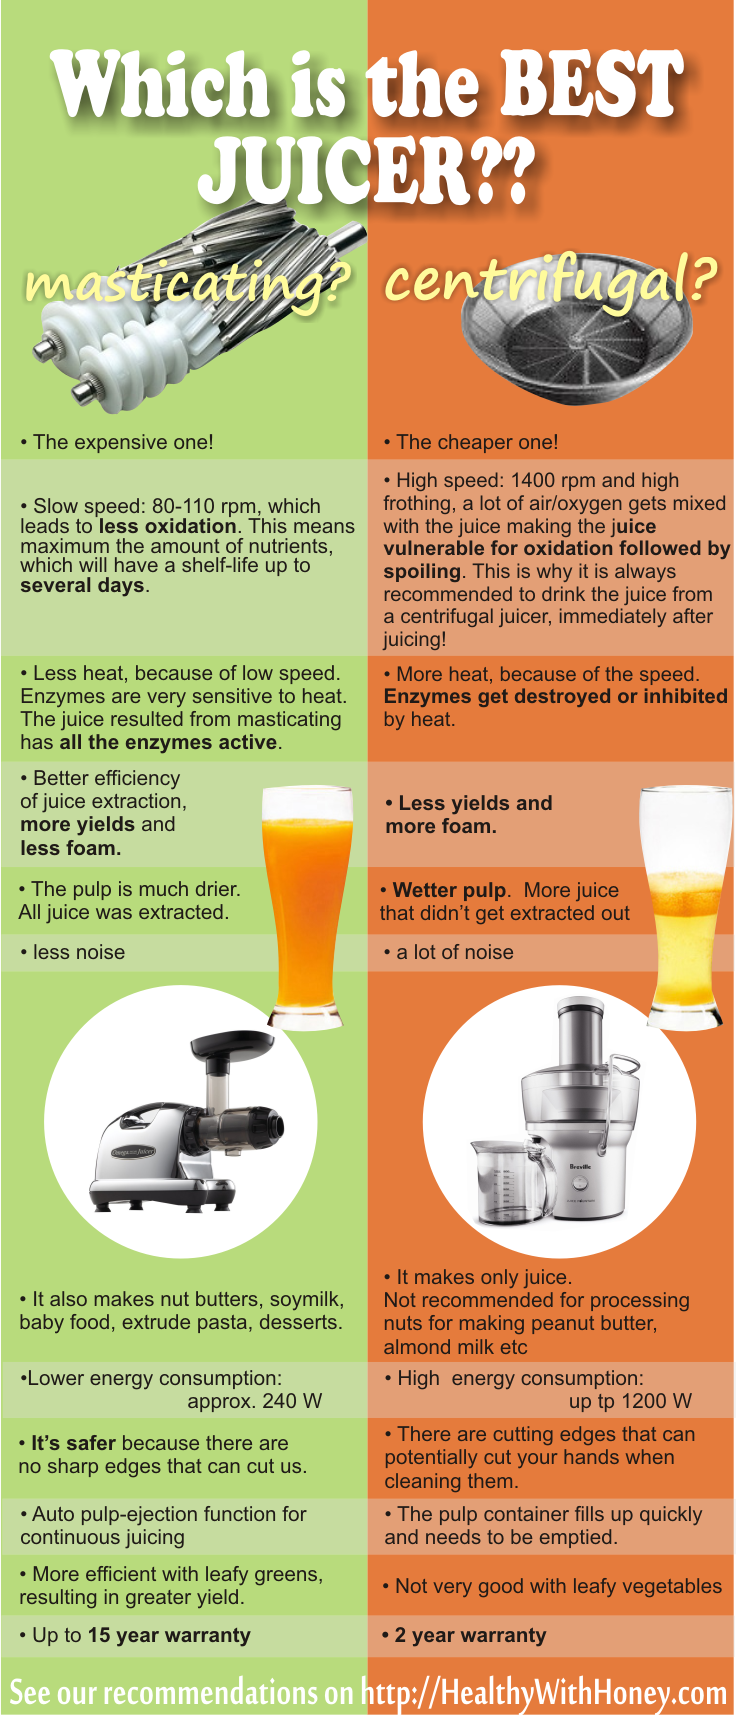 Masticating Juicer Or Centrifugal Juicer : Masticating or centrifugal juicer?